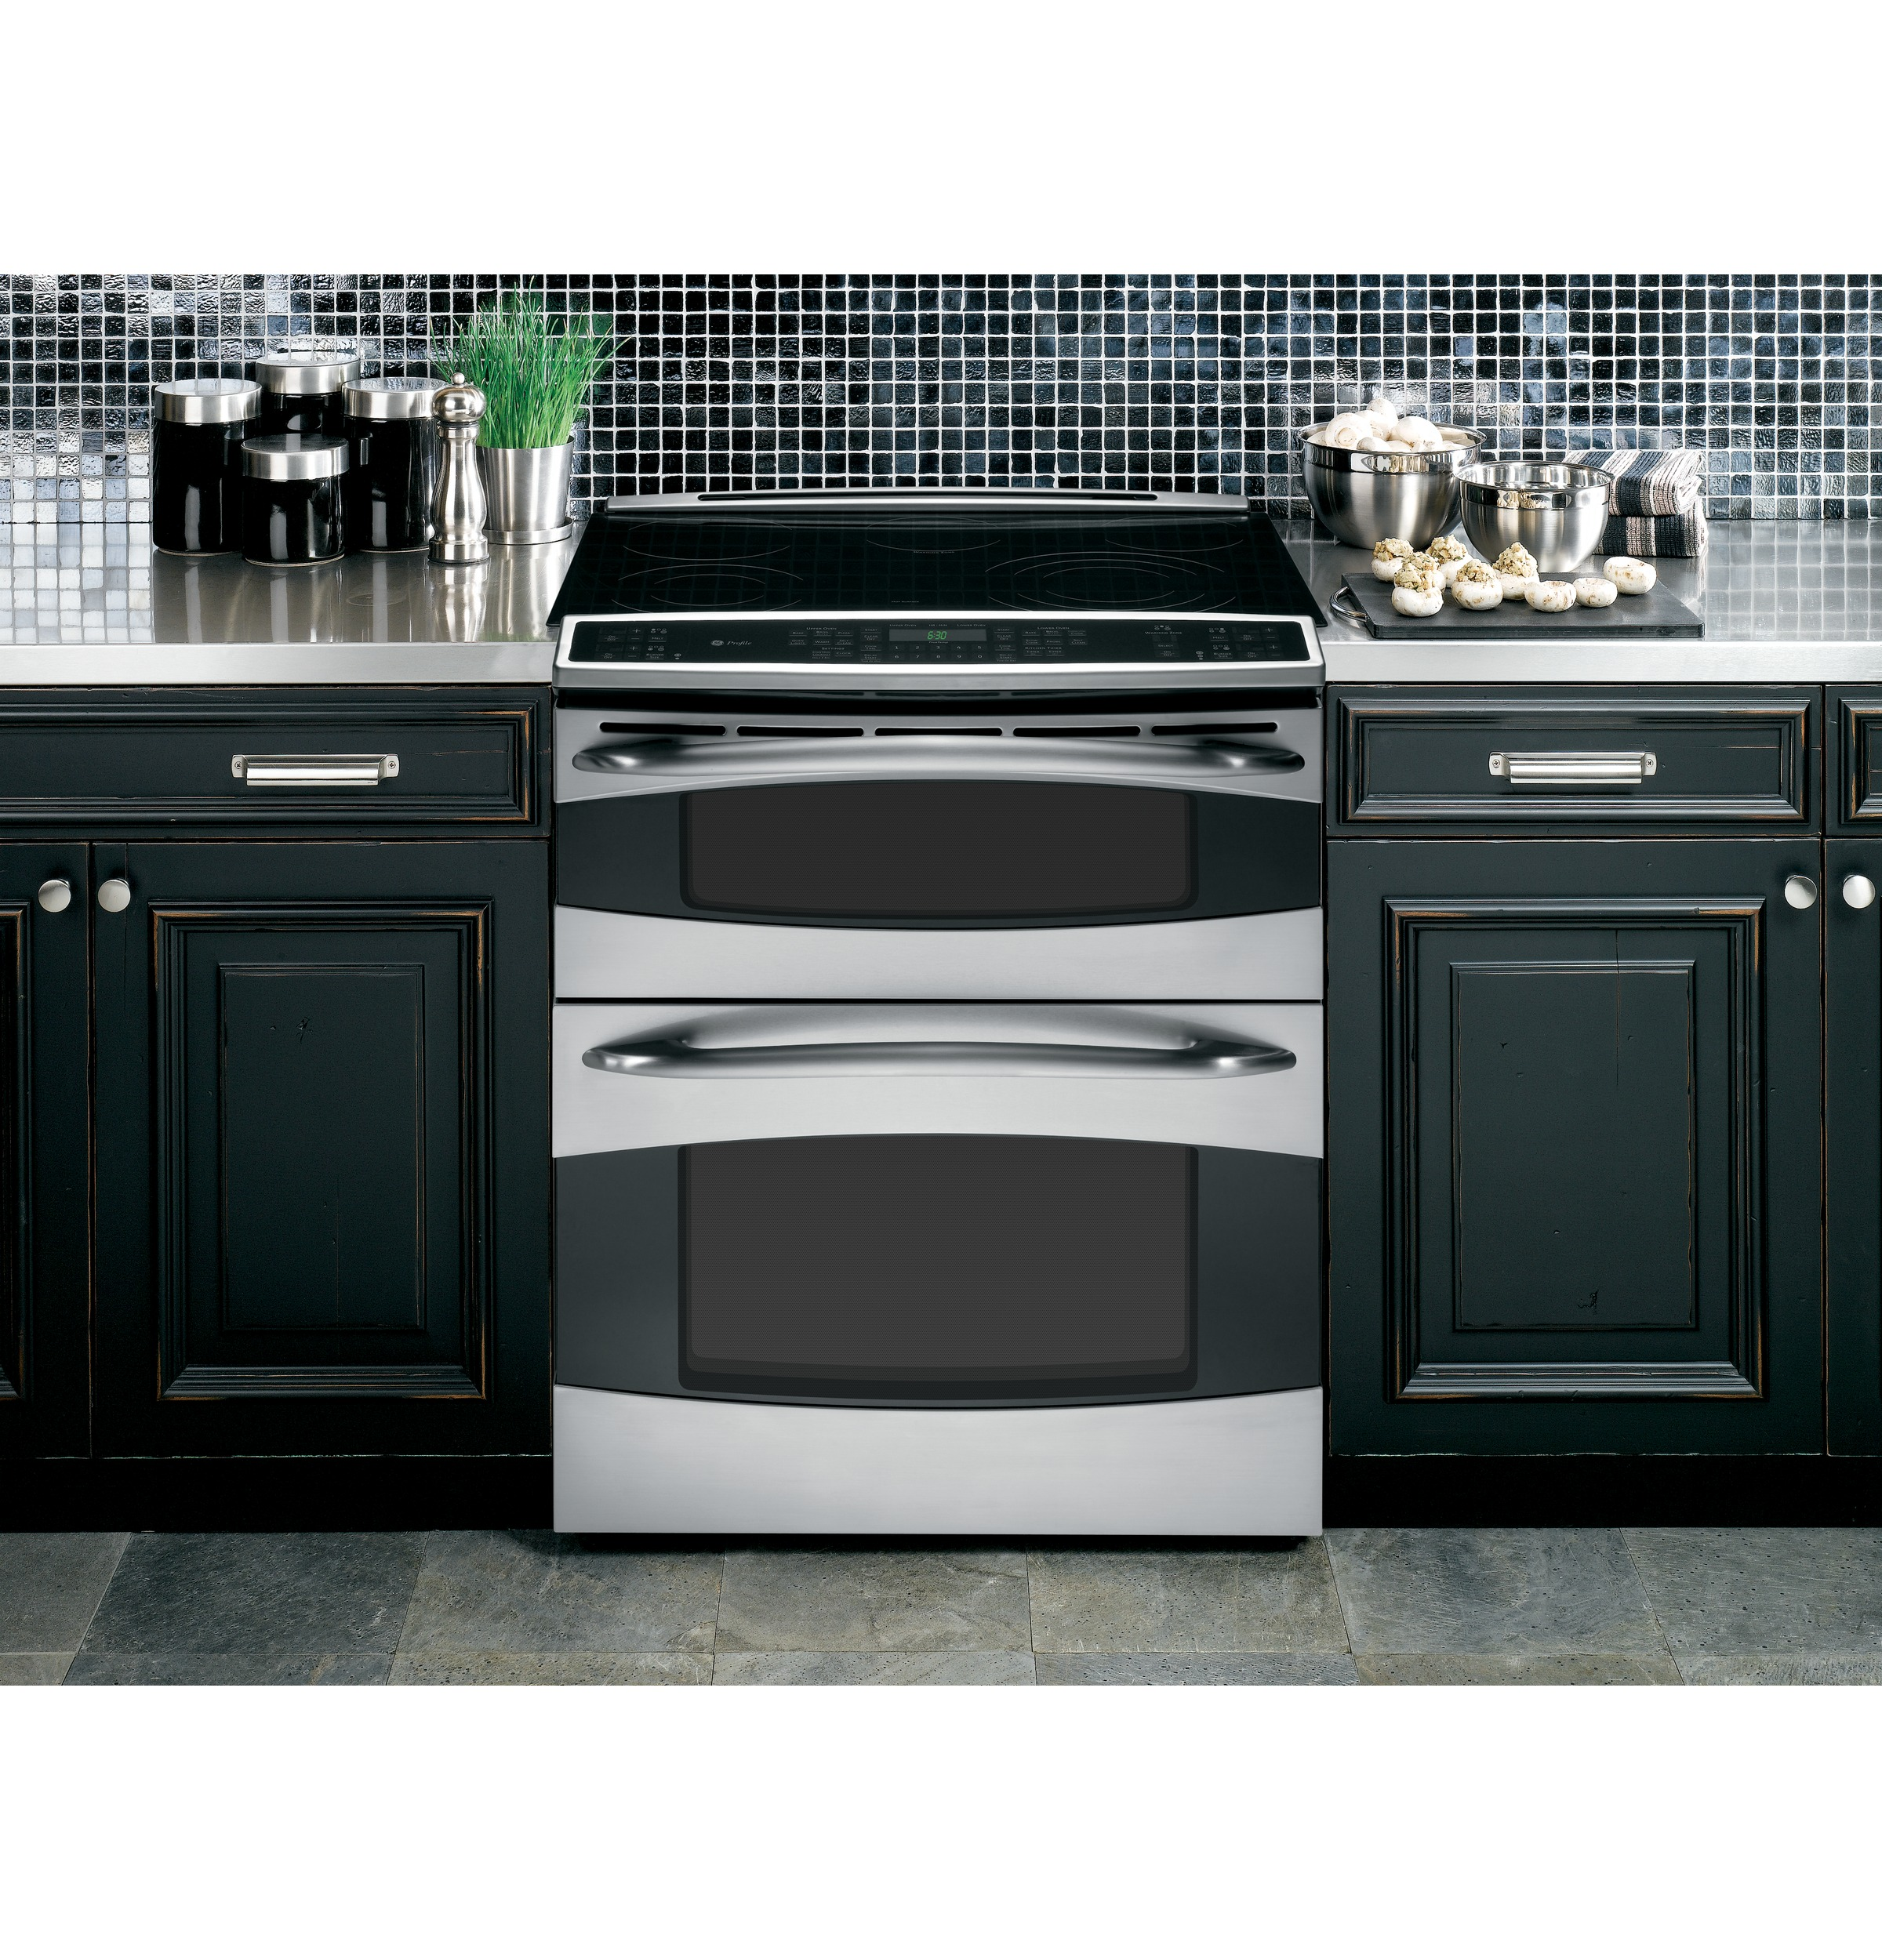 Ge Profile Slide In Double Oven Electric Range